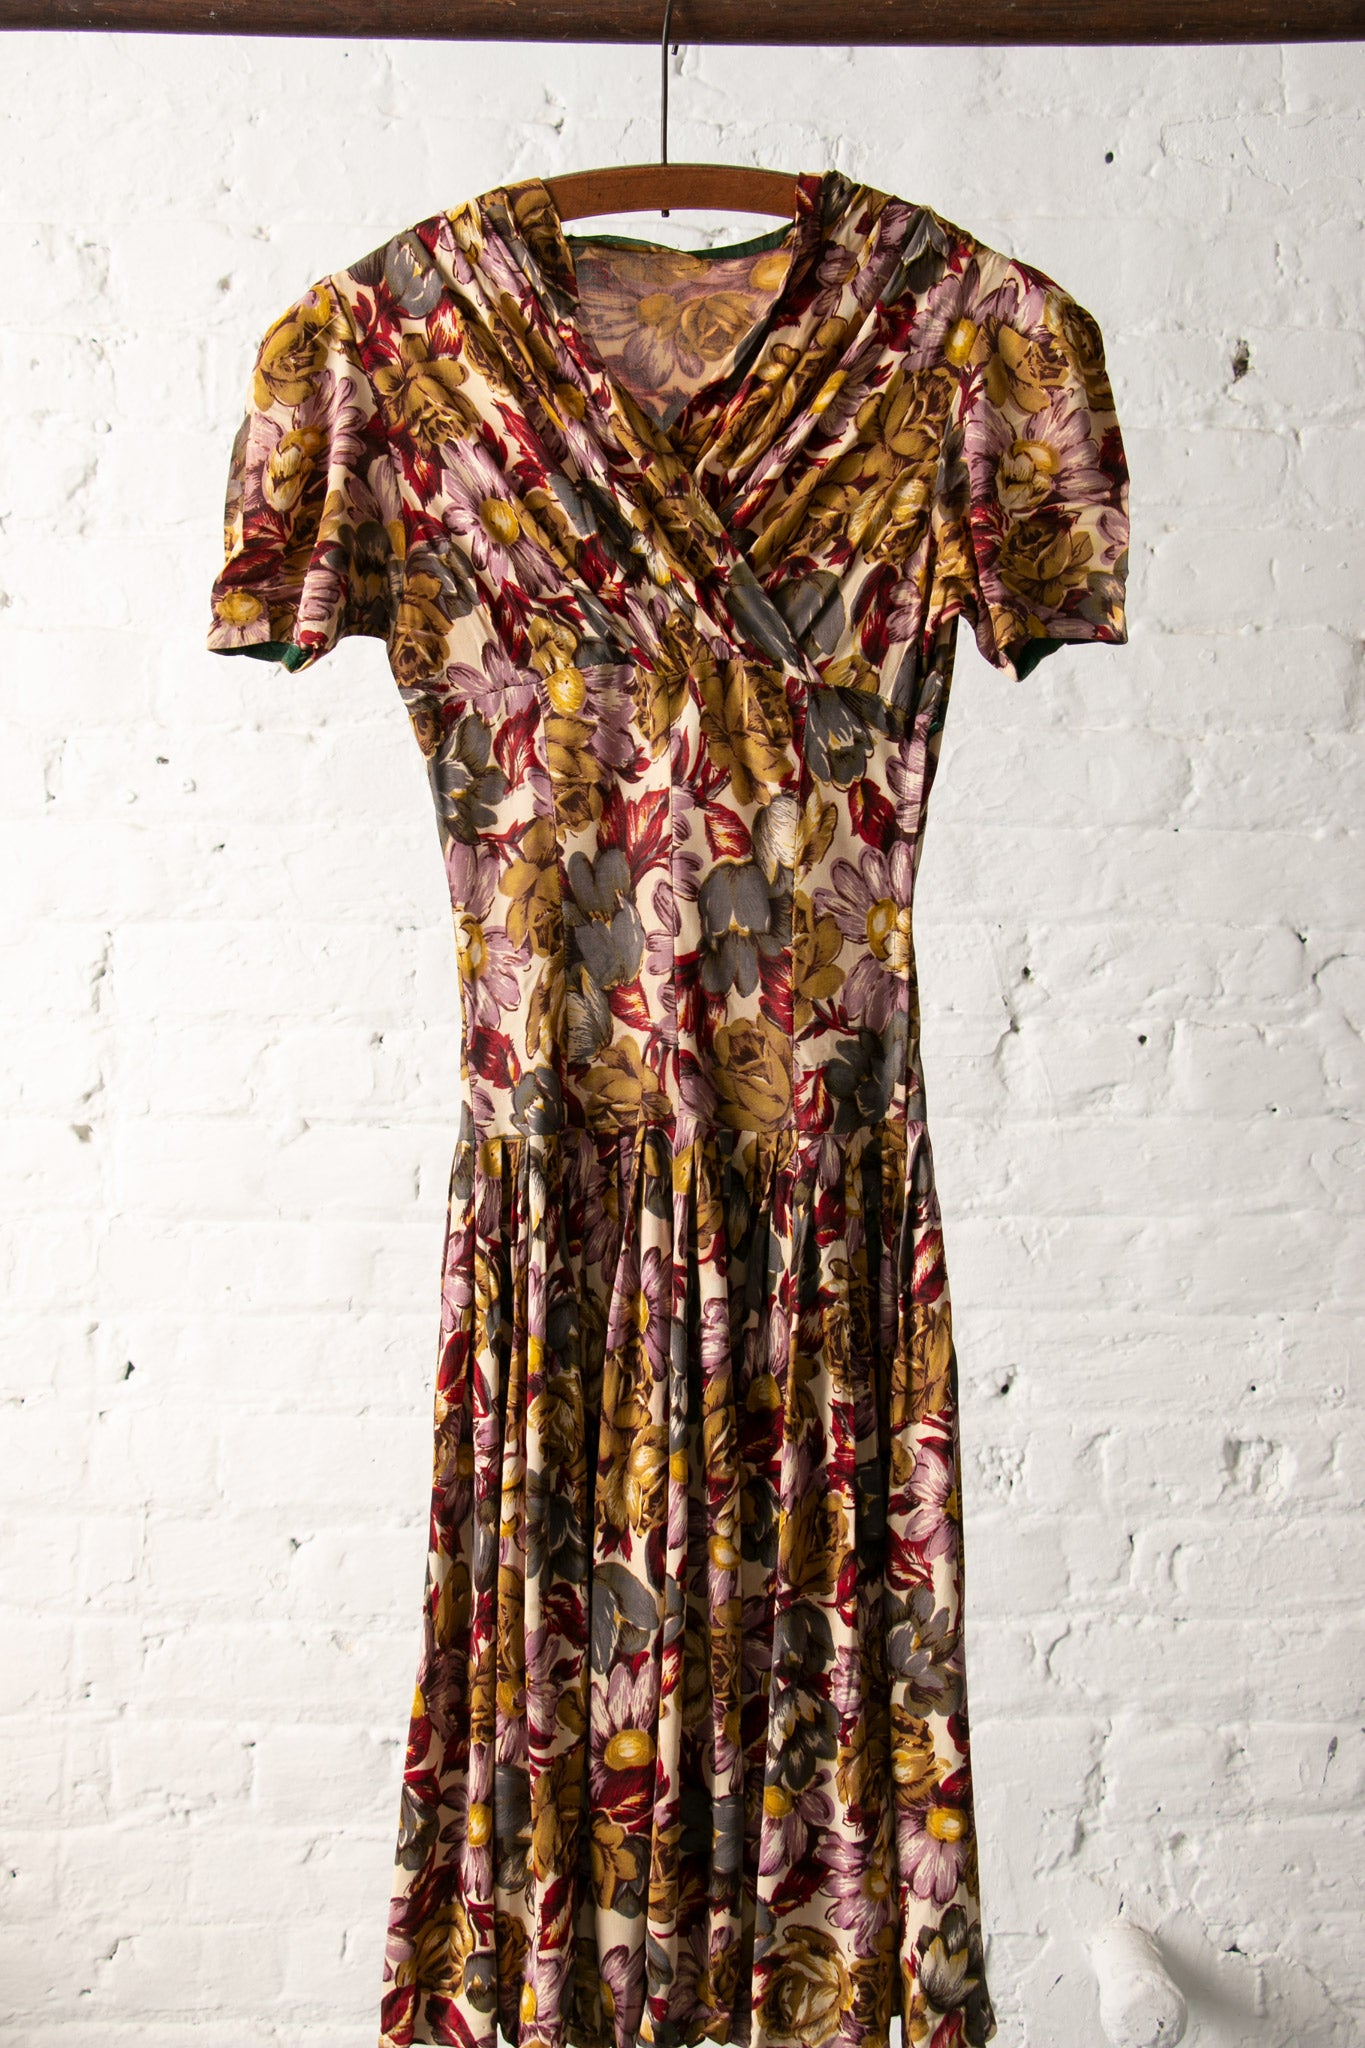 Vintage 1930's 1940's Rayon Jersey Floral Dress